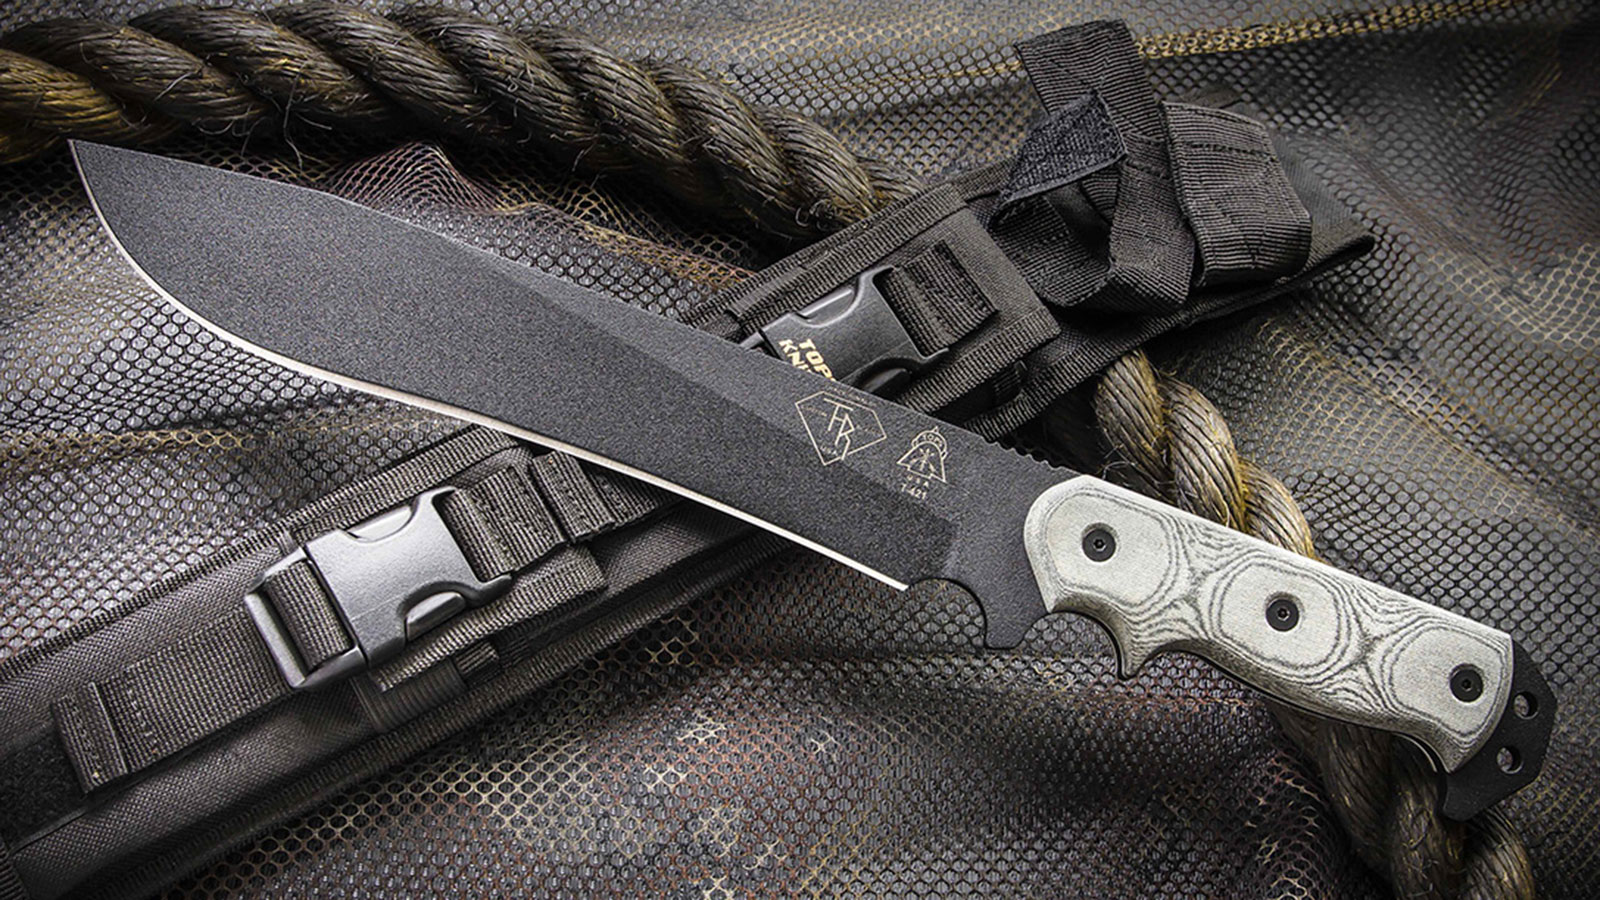 TOPS ARMAGEDDON KNIFE